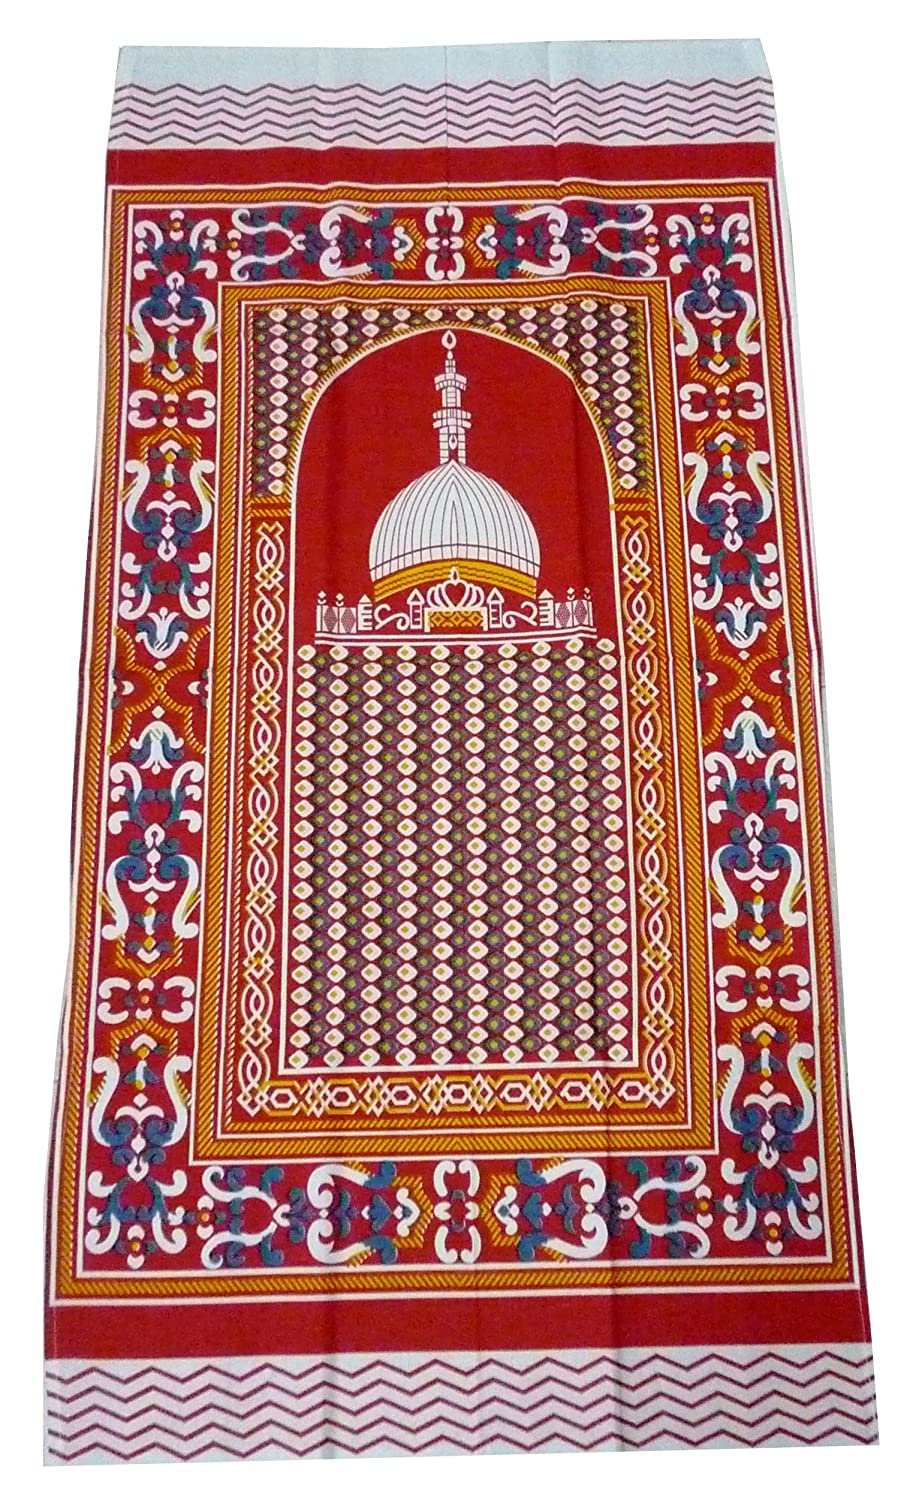 Portable Prayer Mat Thin Cloth Islam Muslim Namaz Sajadah School Camping Backpack Travel Office Sajjadah (Dark Red) Thin Sajadah TH001